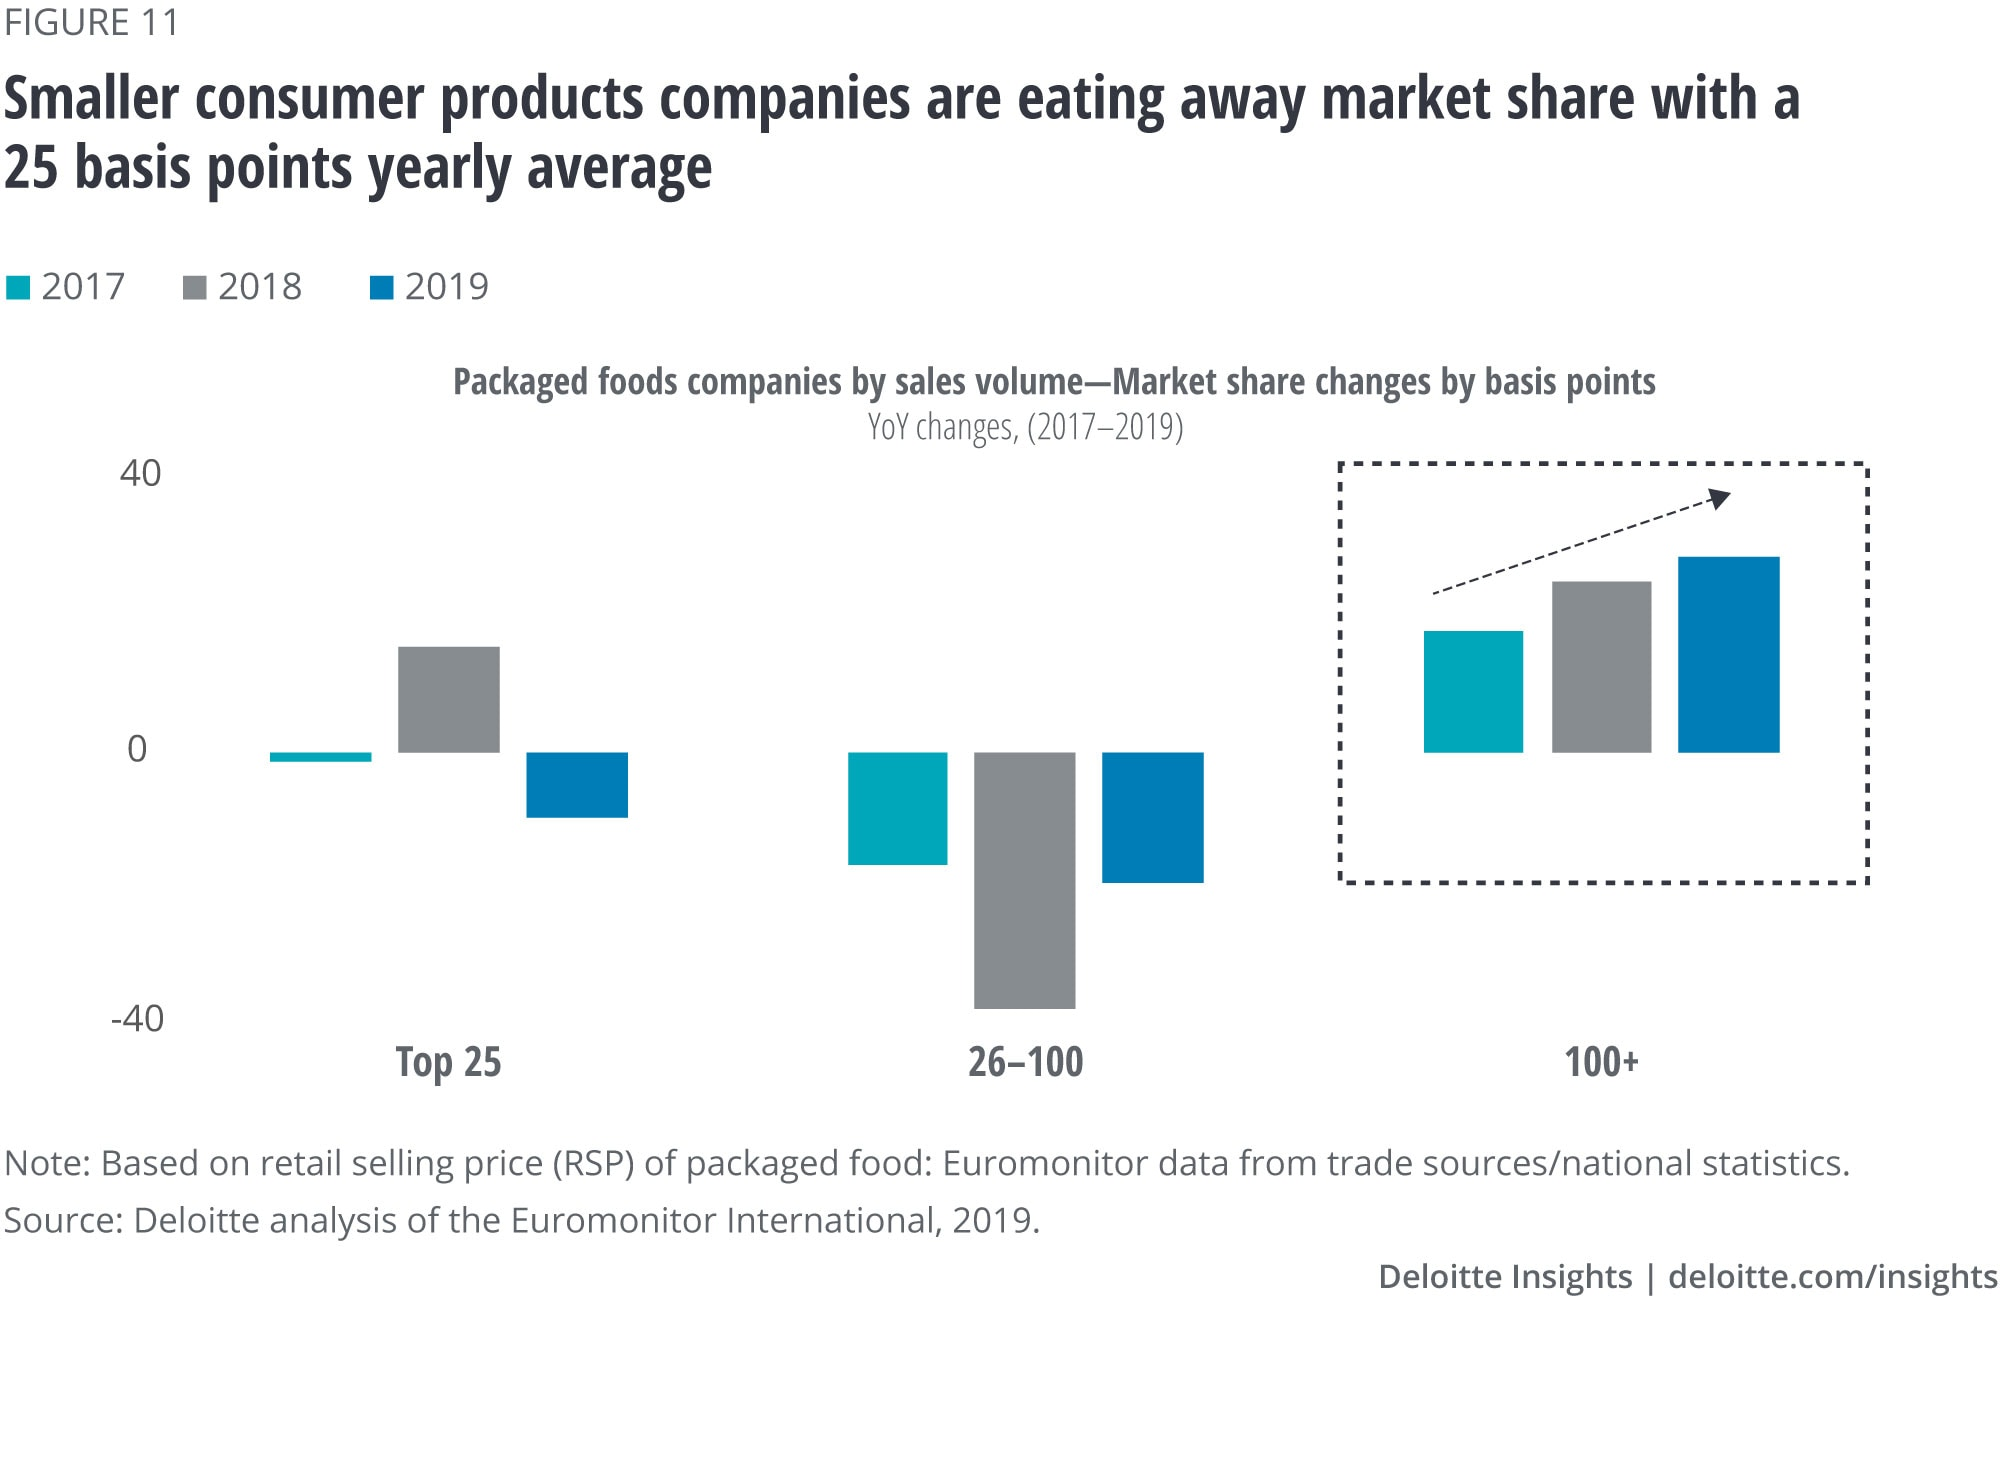 Smaller packaged food companies are eating away market share with a 25-basis-point yearly average